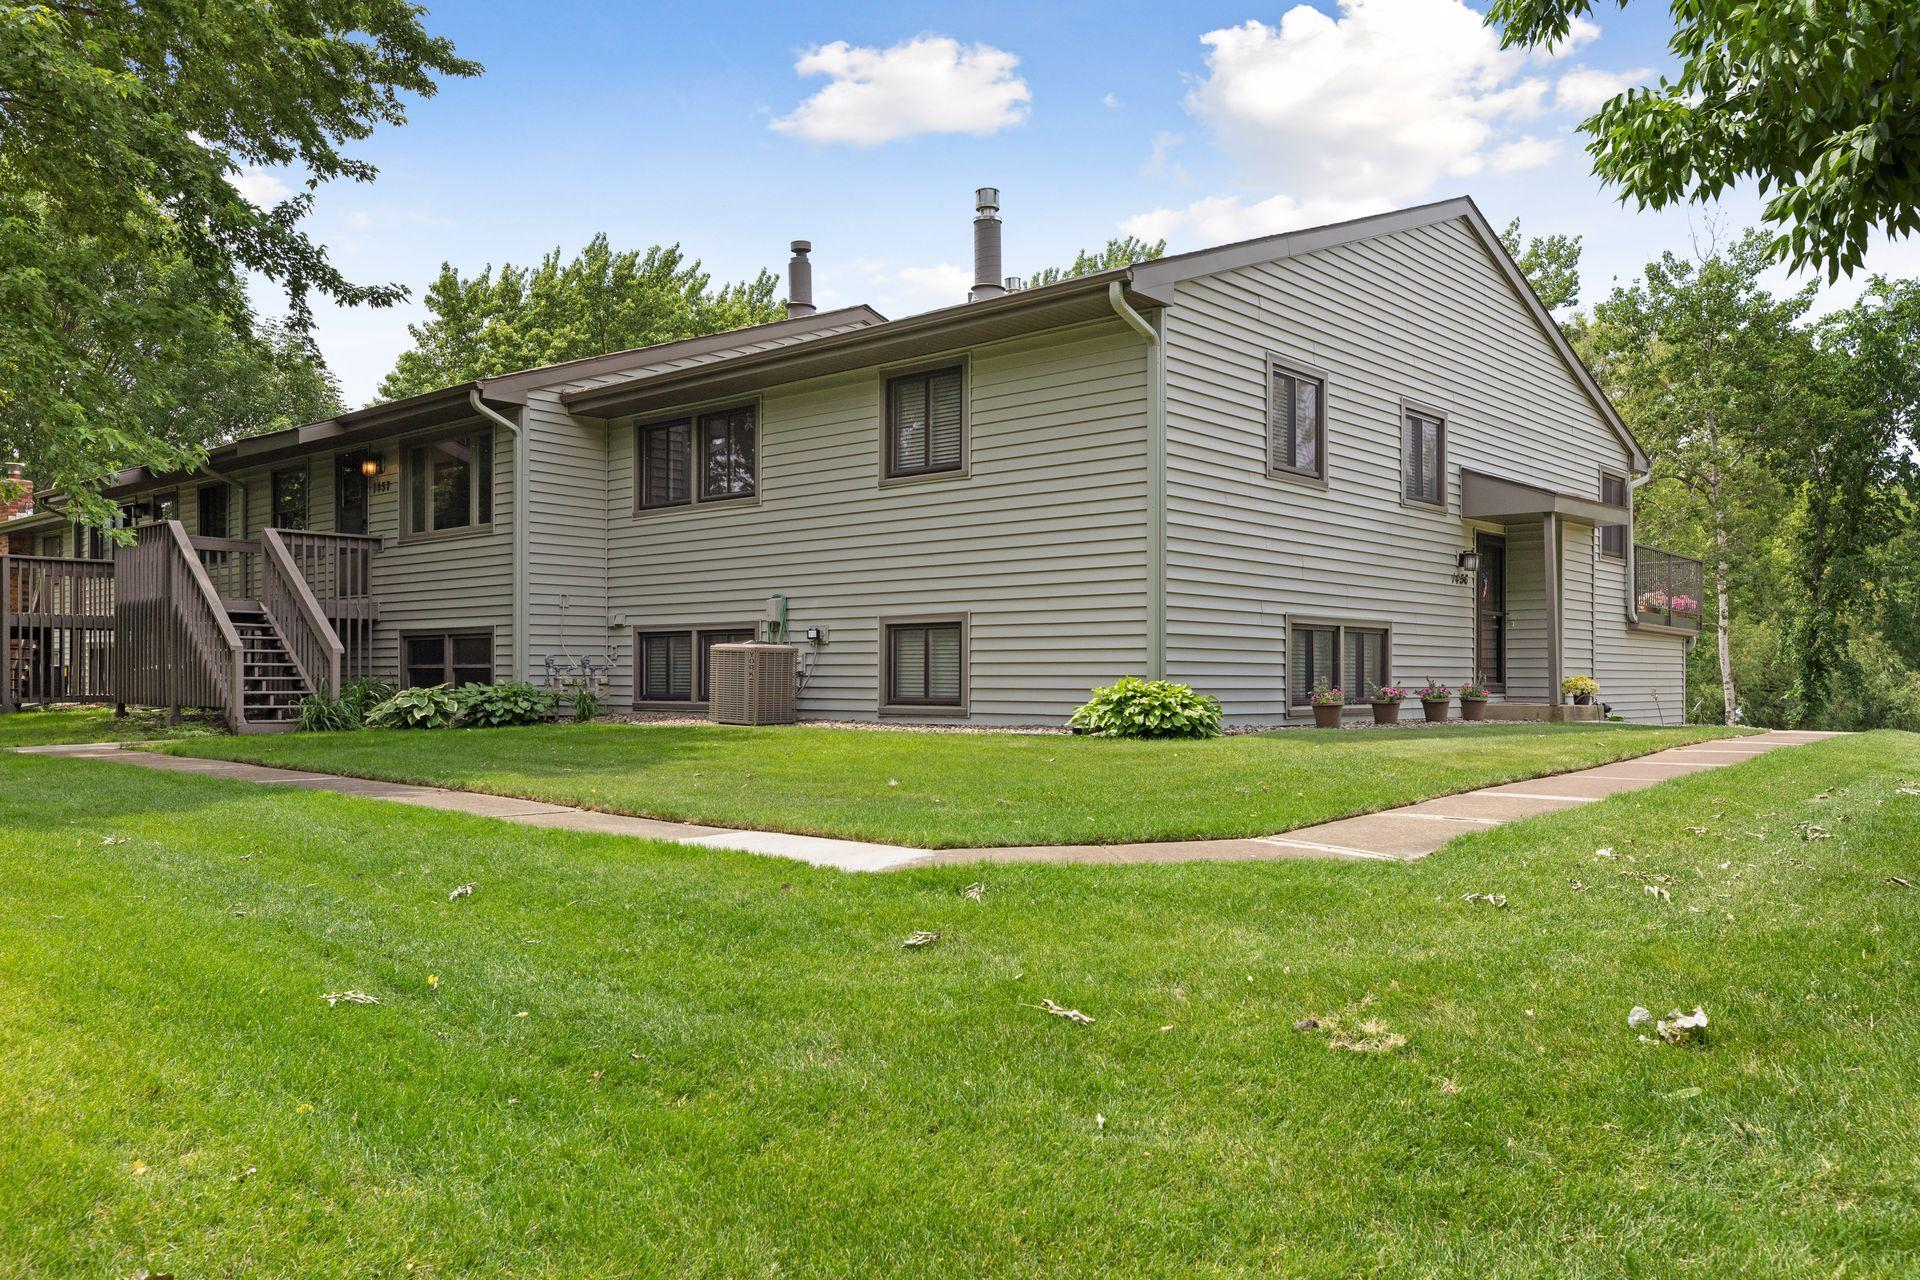 1457 Arden View Drive Property Photo - Arden Hills, MN real estate listing